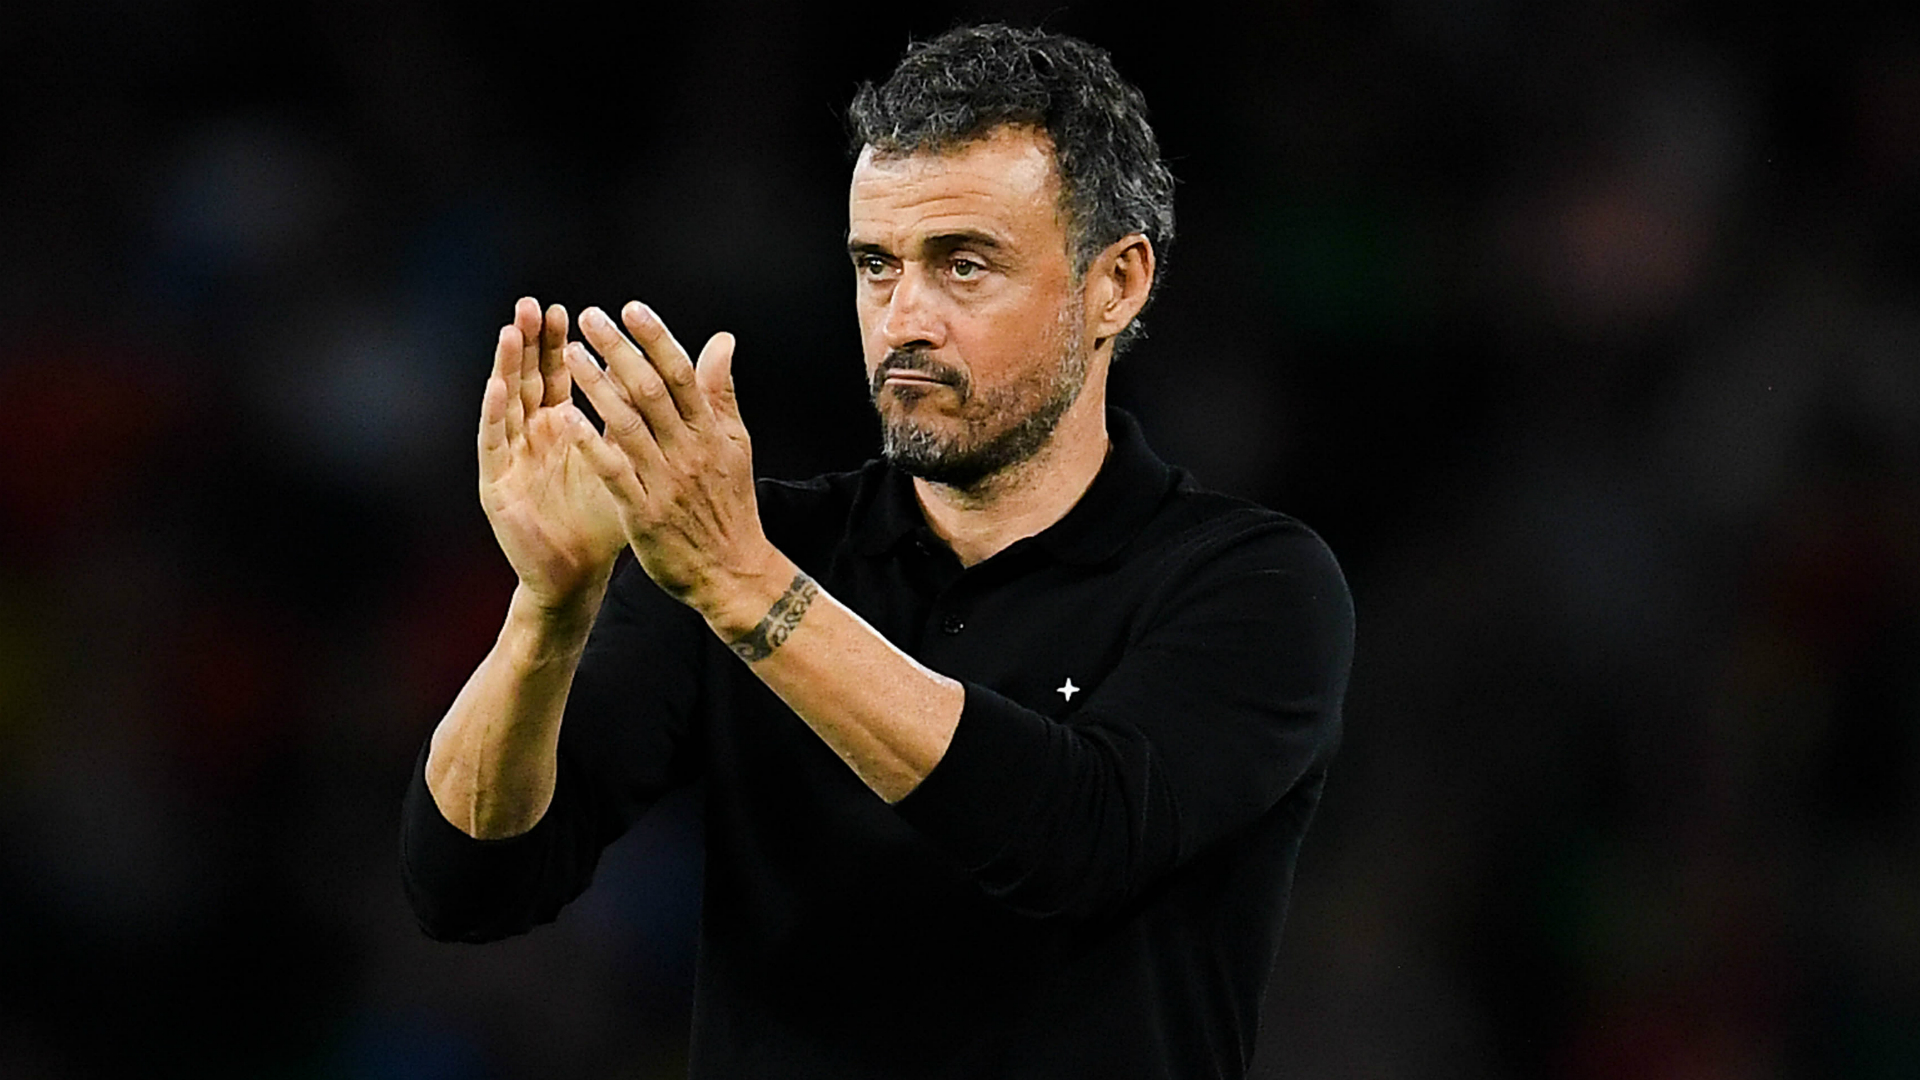 Spain had 'unfair' loss to Croatia in UEFA Nations League - Luis Enrique